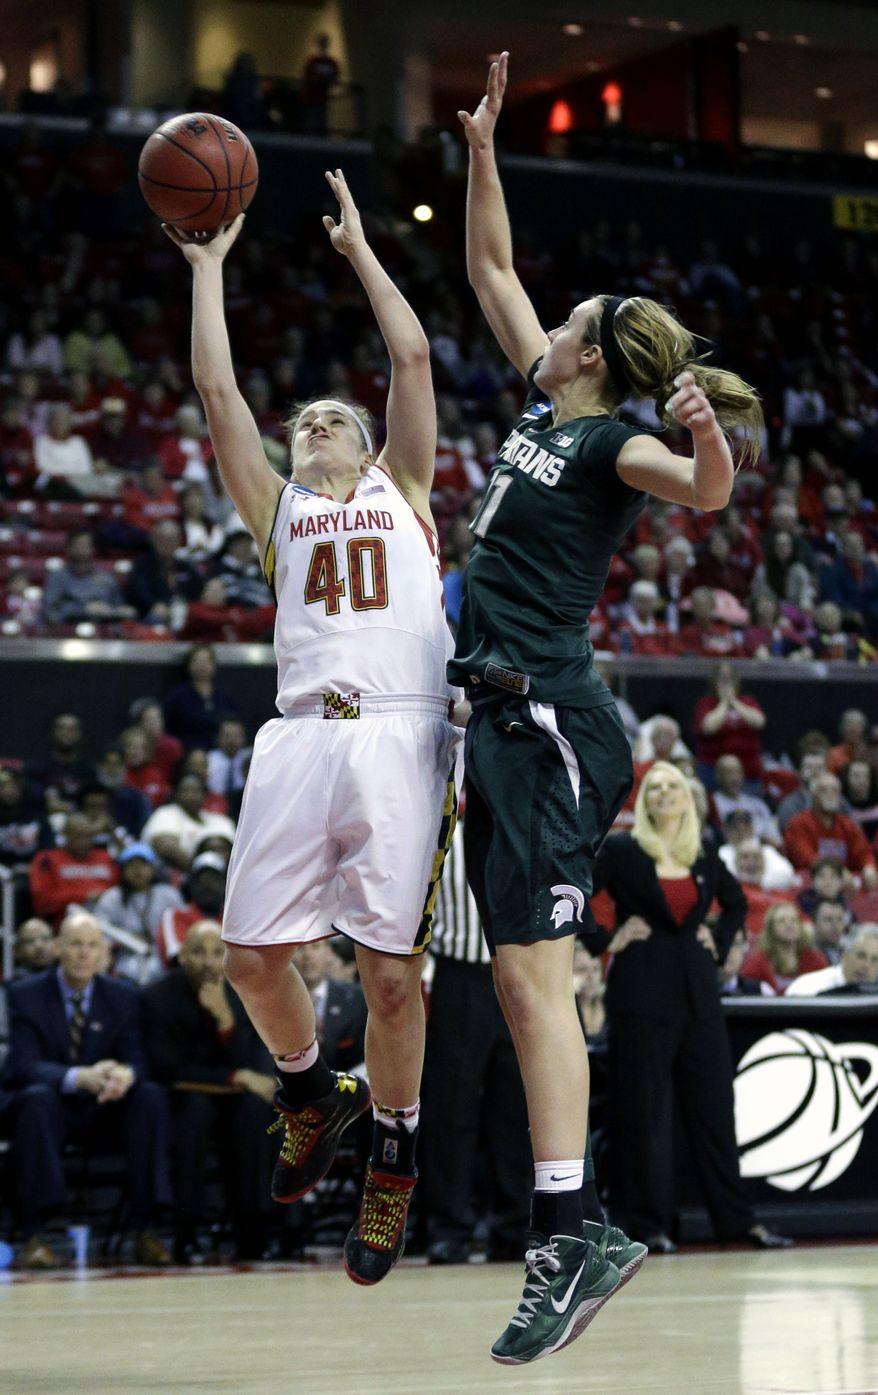 Maryland guard Katie Rutan, left, shoots over Michigan State forward Annalise Pickrel during the second half of a second-round game in the women's NCAA college basketball tournament in College Park, Md., Monday, March 25, 2013. Rutan contributed 18 points to Maryland's 74-49 win. (AP Photo/Patrick Semansky)